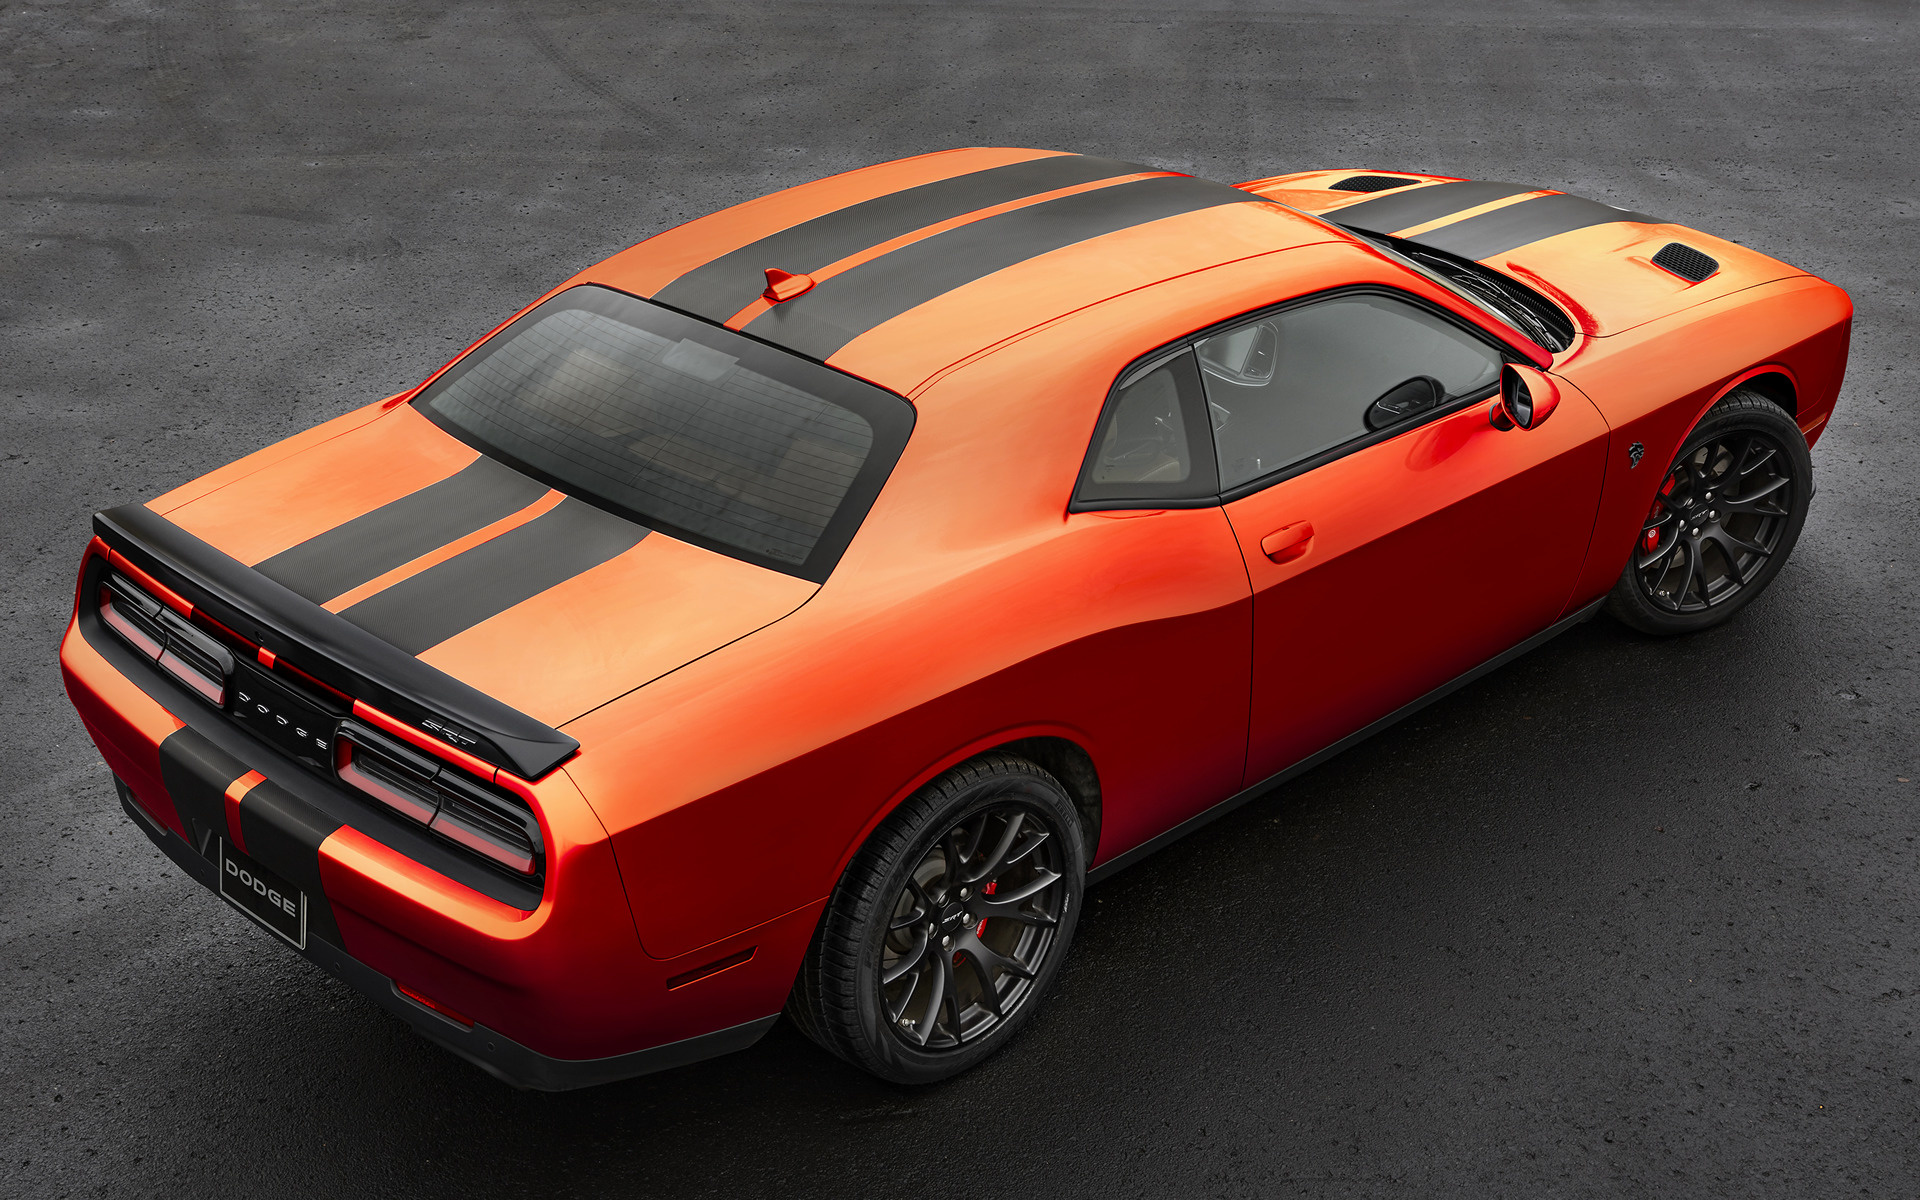 dodge pricing challenger exterior ratings blue kelley book rearside reviews